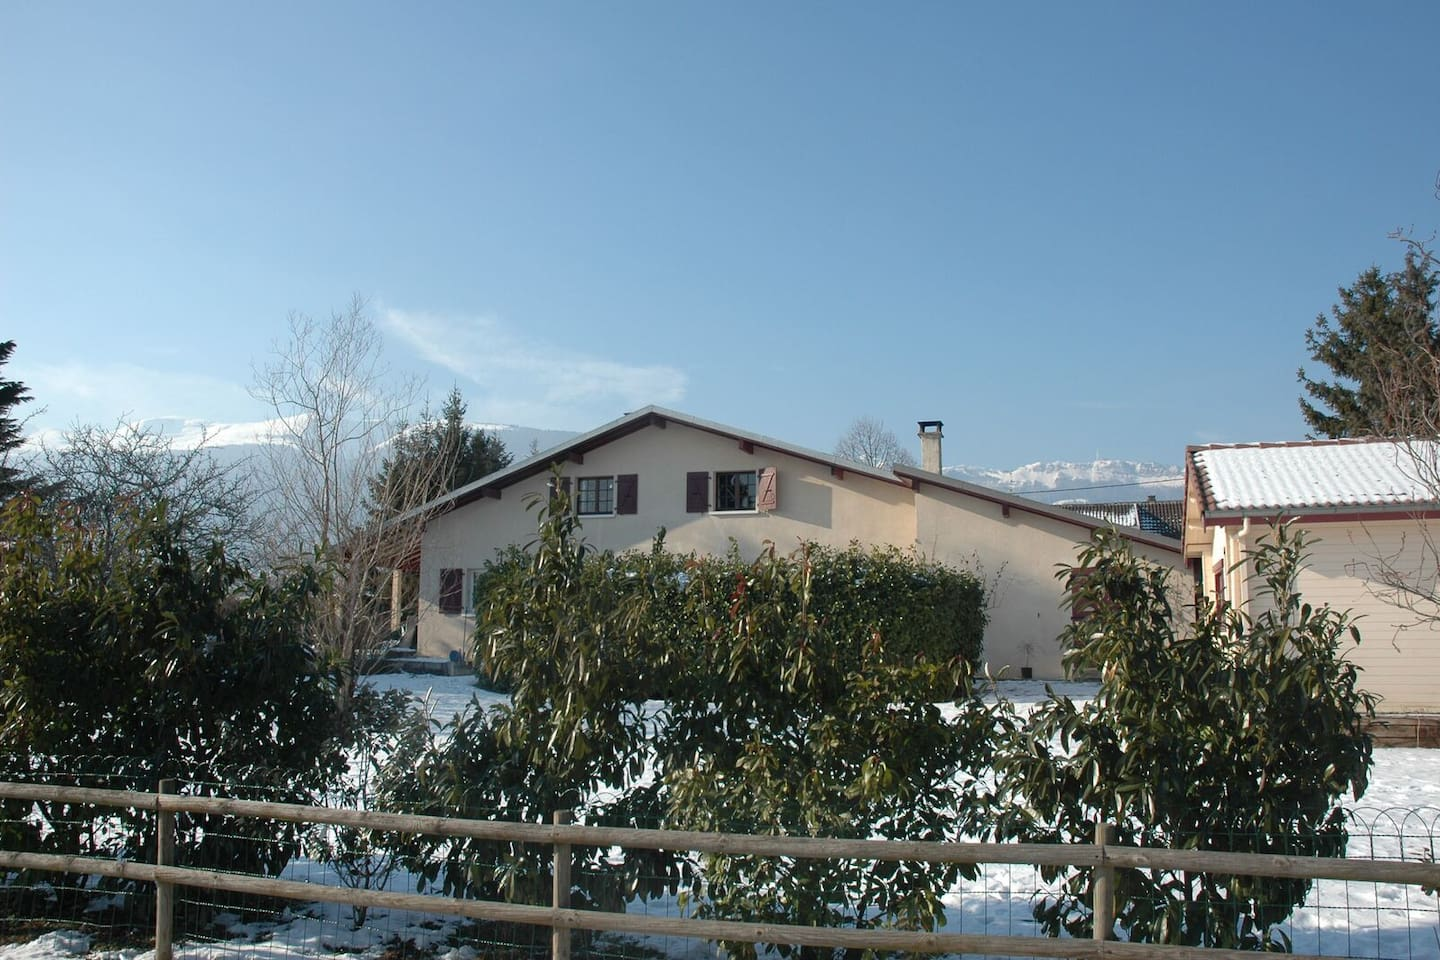 Studio apartment in the charming French village of Cessy only 15 minutes from Geneva.  Own entrance, parking space and patio overlooking the Jura mountains one way and Mont Blanc the other.